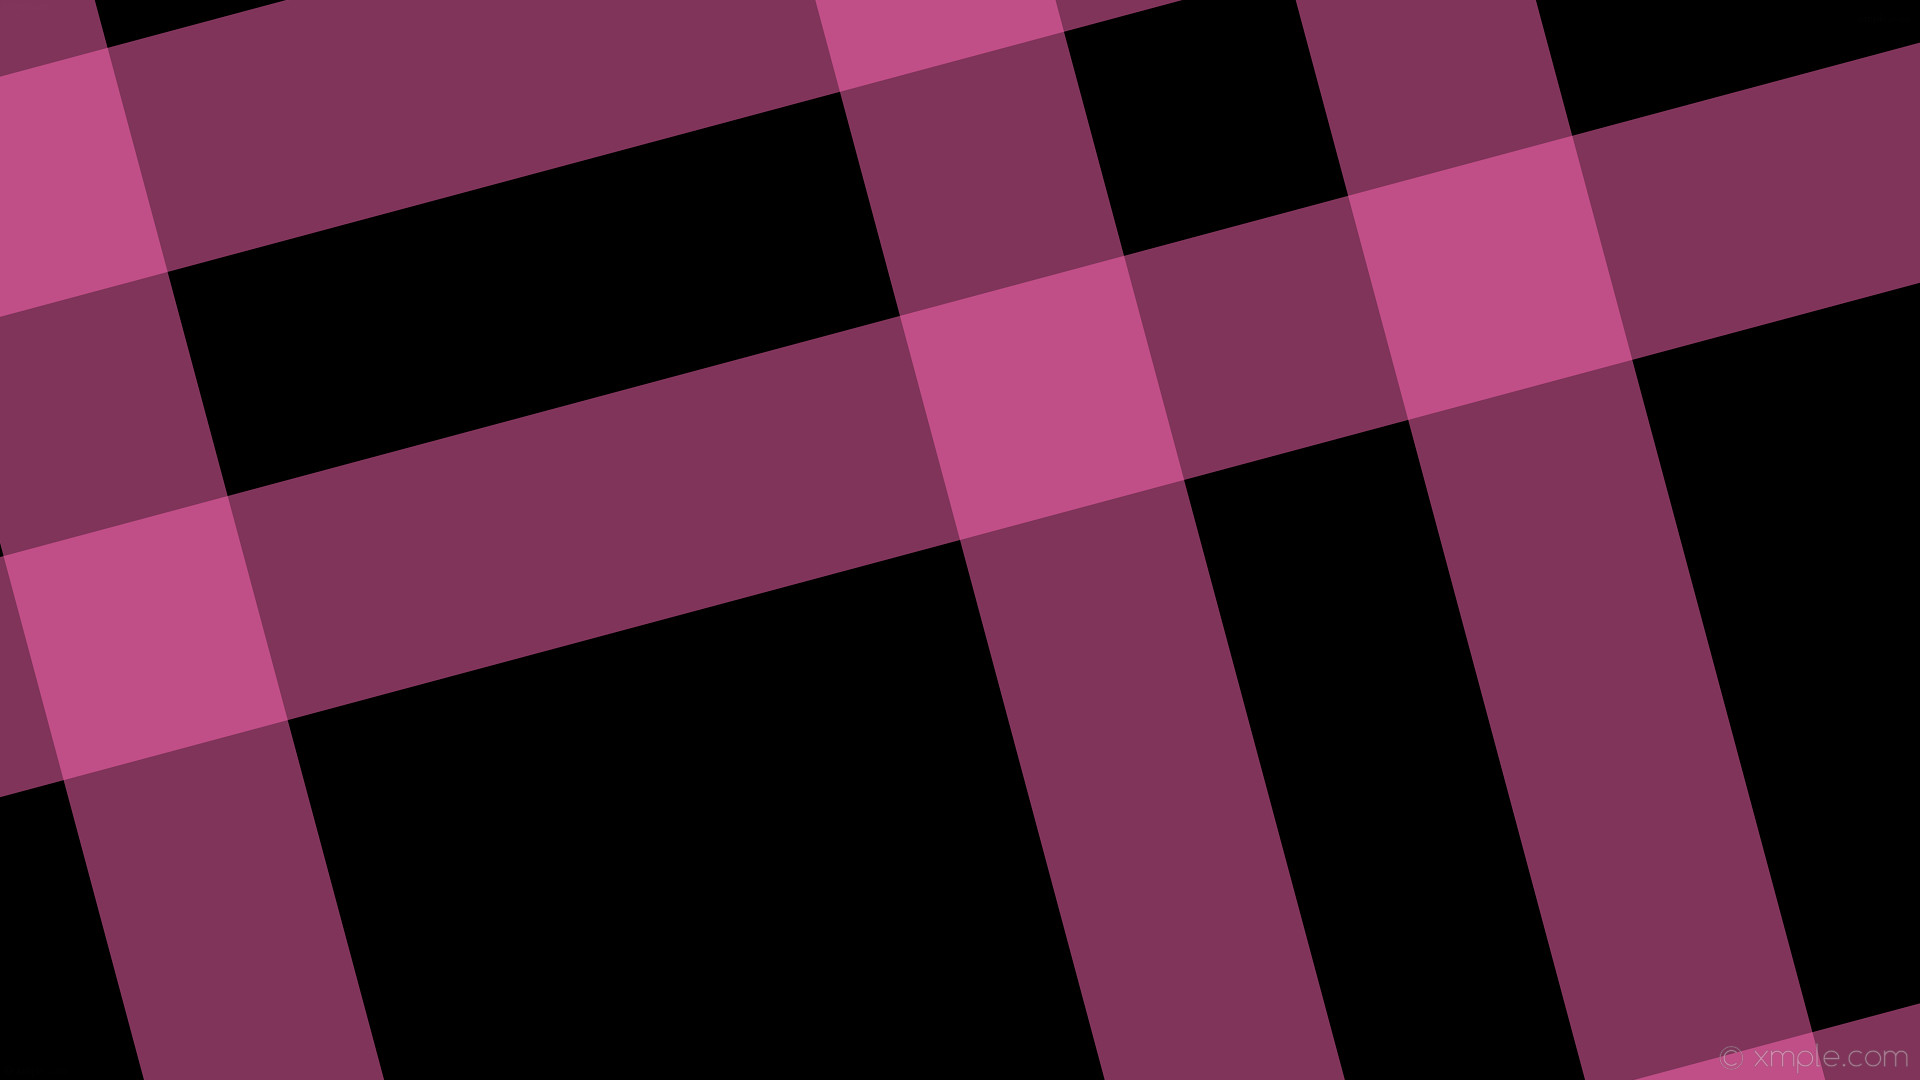 wallpaper pink black dual gingham striped hot pink #000000 #ff69b4 105°  232px